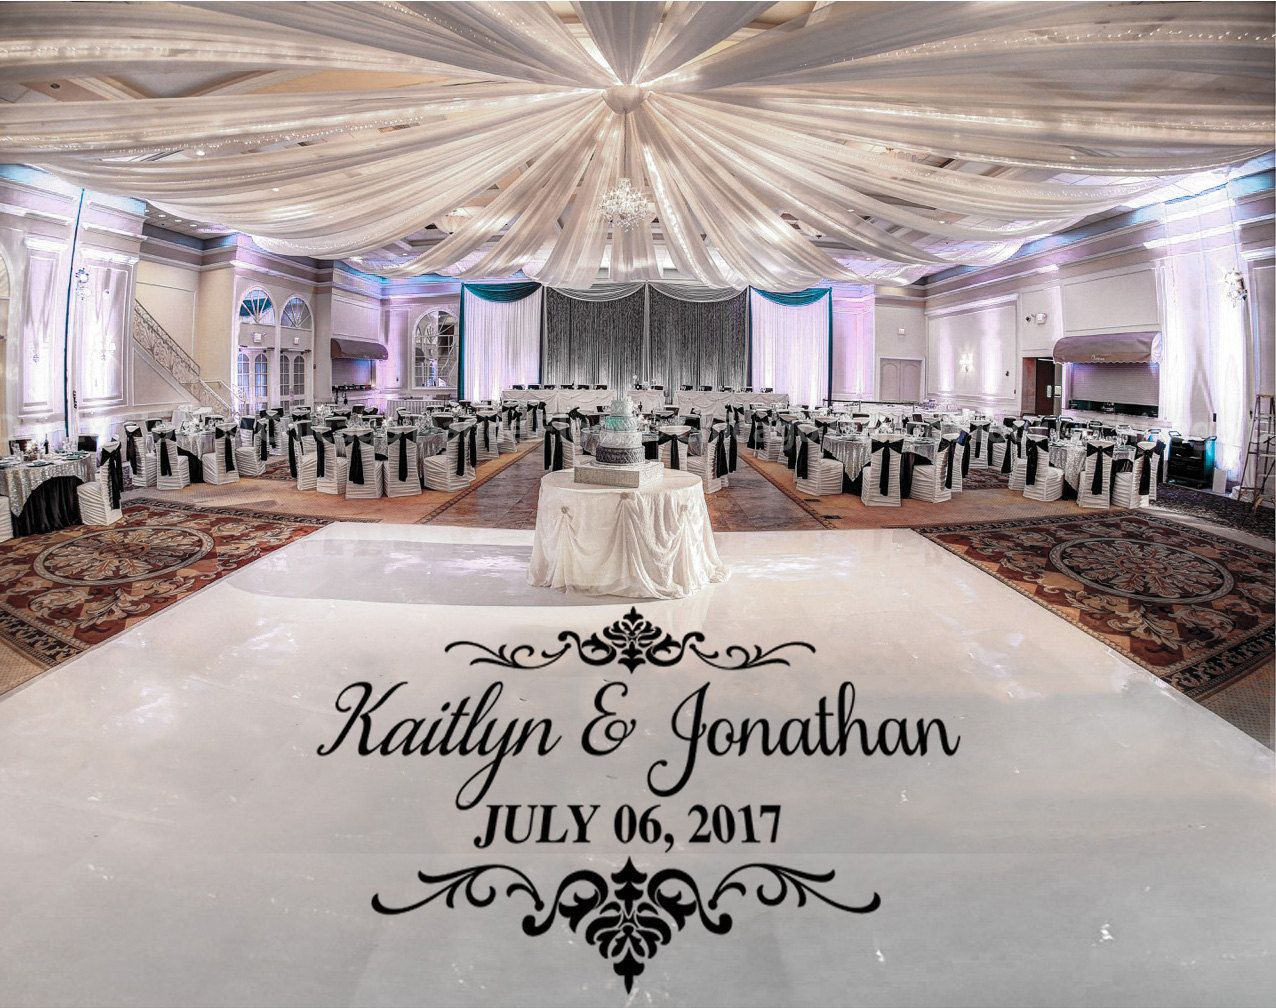 Clic Damask Theme Dance Floor Wedding Logo Decal Personalized Names With Date Large Size